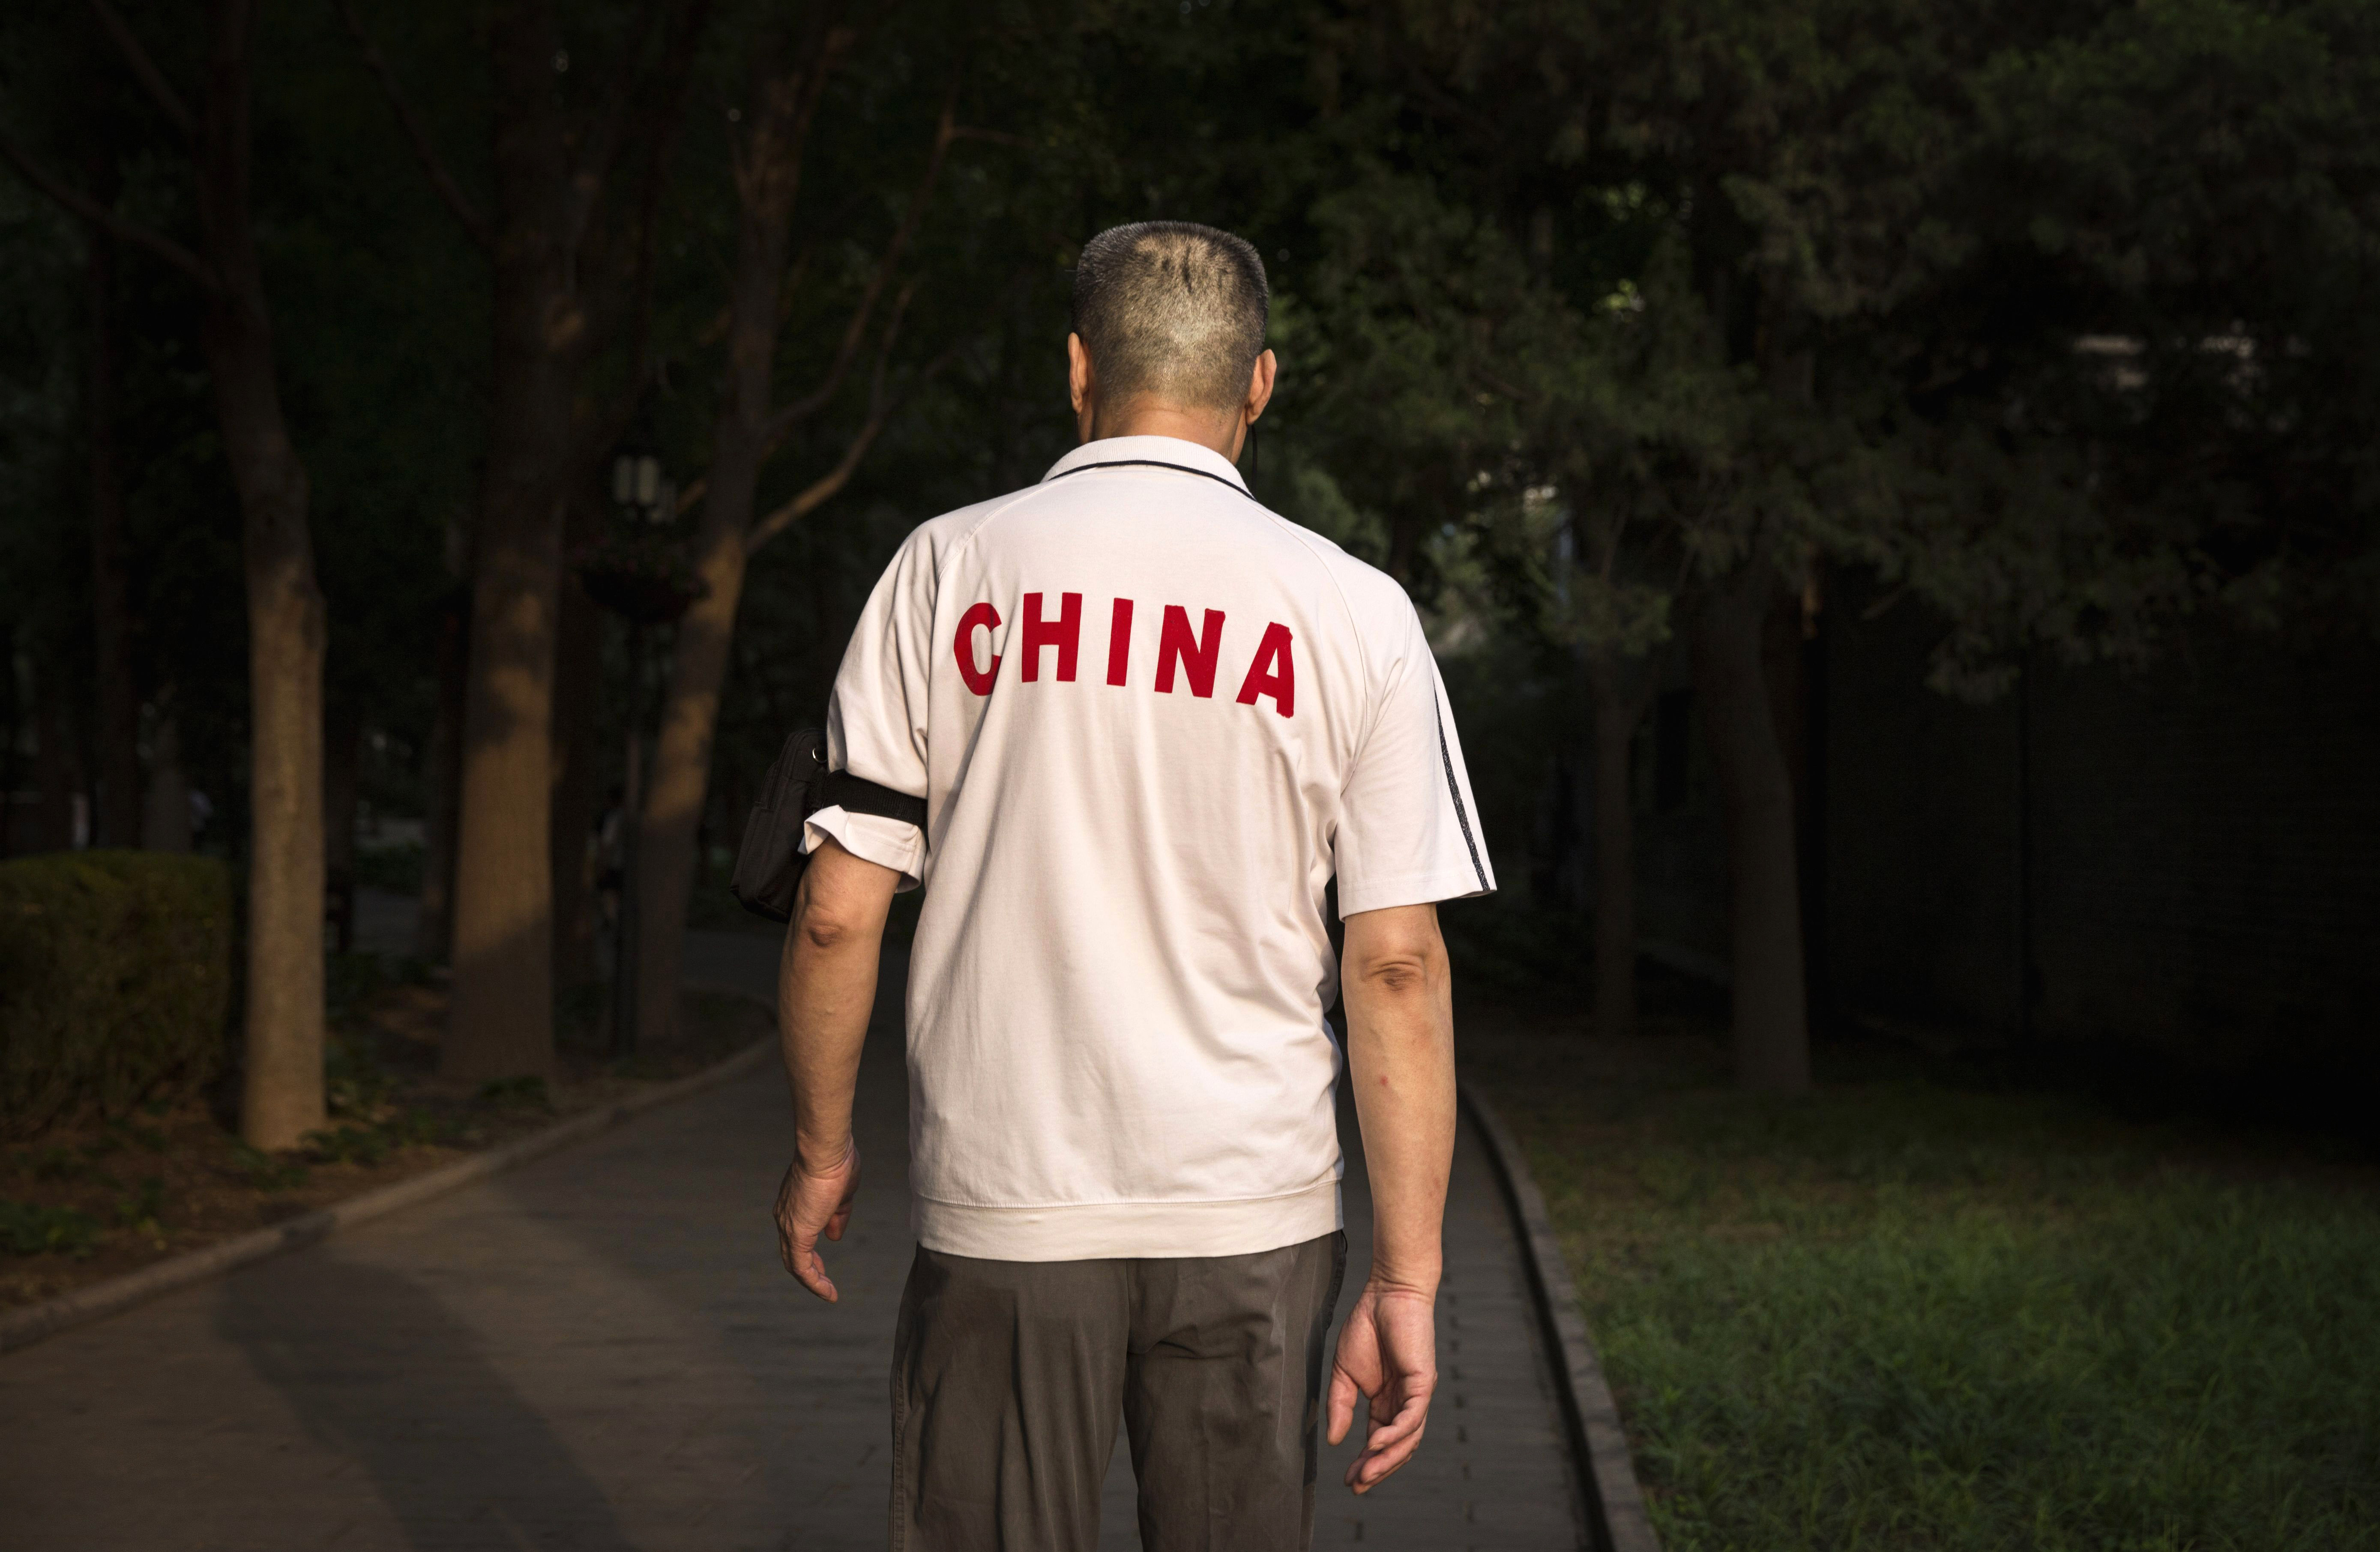 BEIJING, CHINA - JUNE 11: A Chinese man walks at Ritan Park on June 11, 2016 in Beijing, China. Ritan, meaning 'sun altar', is among the oldest parks in Beijing, built in the early 1500s during the Ming dynasty for the emperor to make sacrifices to the sun. Less than half a kilometer square, Ritan these days is considered an oasis of green space in a sprawling city of skyscrapers, notorious air pollution, and a population of over 20 million people. Most Chinese live in small apartments with no access to gardens, leaving parks as a welcome haven for people, especially the elderly, to exercise, socialize, or enjoy a degree of privacy. The average day at Ritan is a showcase of conventional routines such as jogging, dancing, and martial arts, mixed with the assortment of odd activities -- including 'voice exercises' and back-scratching on trees -- that are known to be unique staples of Beijing park life.